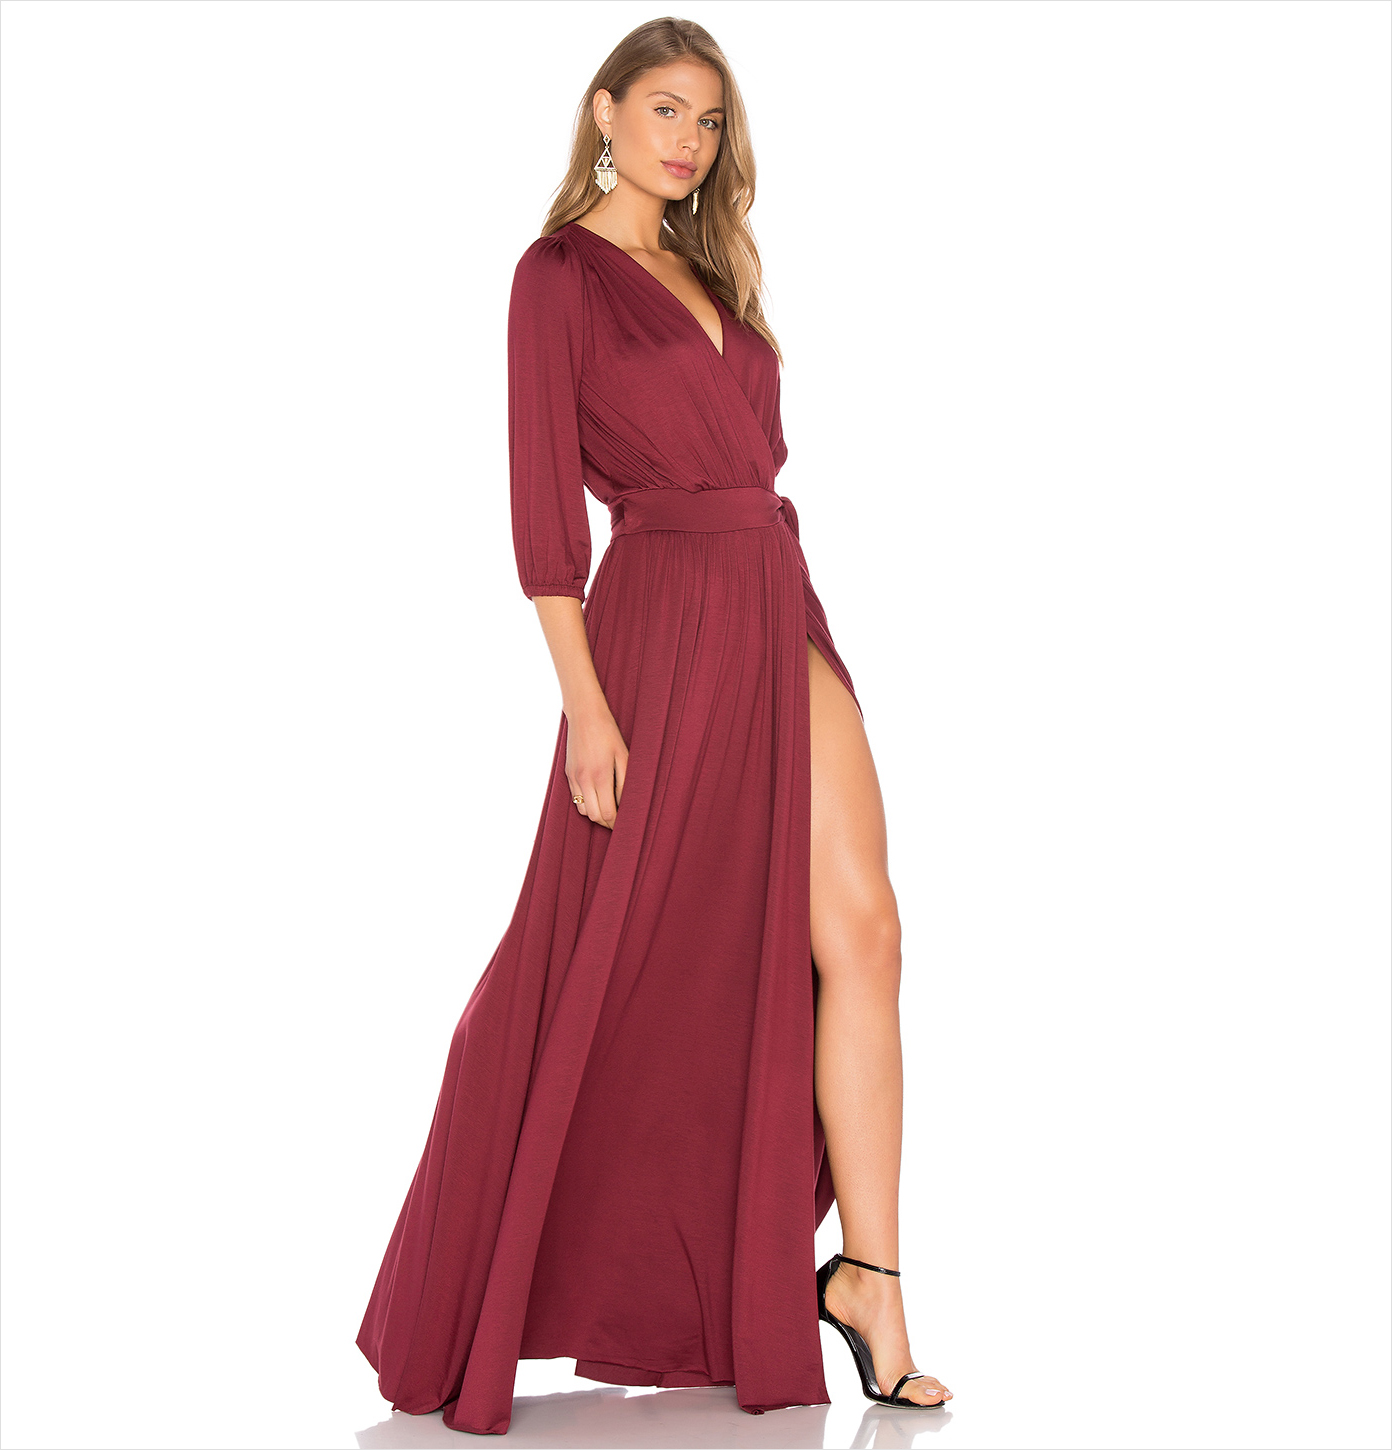 Wedding guest dress ideas long sleeve dresses inside for Long sleeve dresses to wear to a wedding